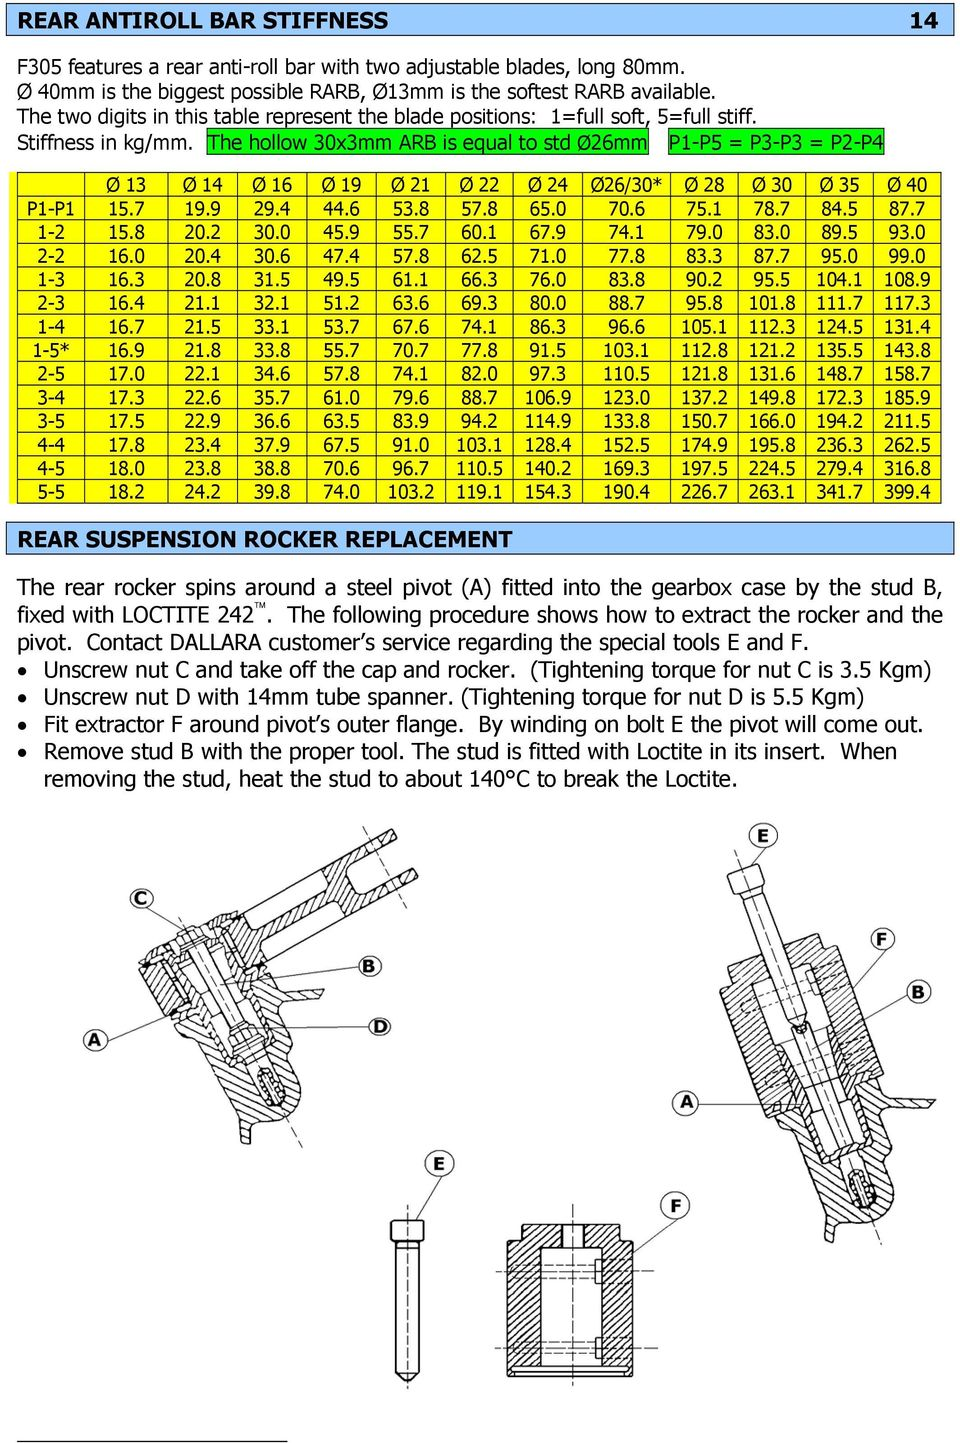 Dallara F305 Suspension Front 7 11 Rear Differential Dampers 17 Bmw L6 M6 Electrical Troubleshooting And 87car Wiring Diagram The Hollow 30x3mm Arb Is Equal To Std 26mm P1 P5 P3